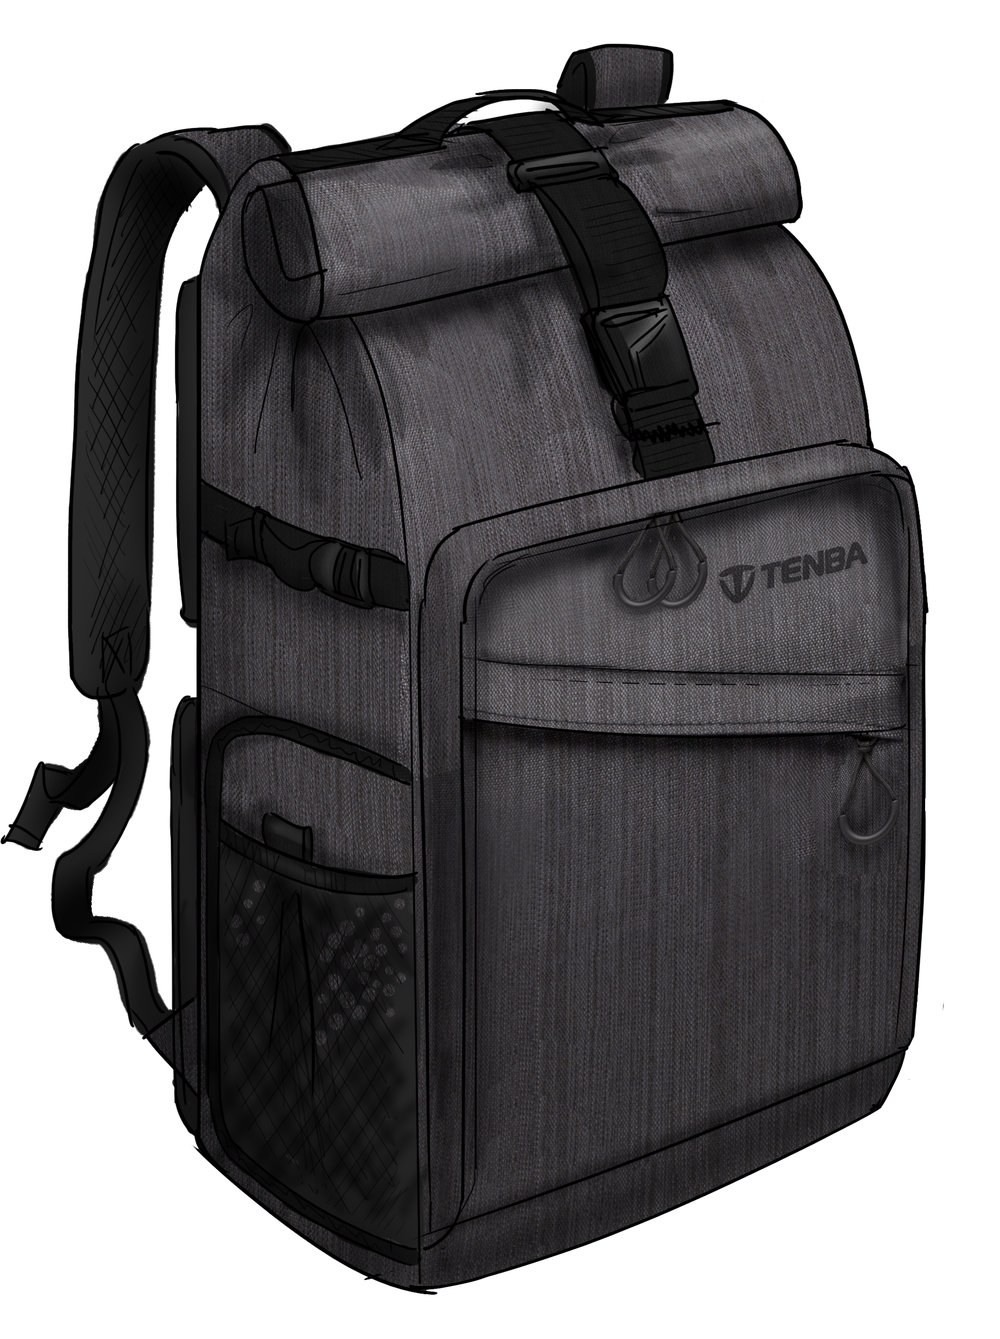 DNA Rolltop backpack - color.jpg